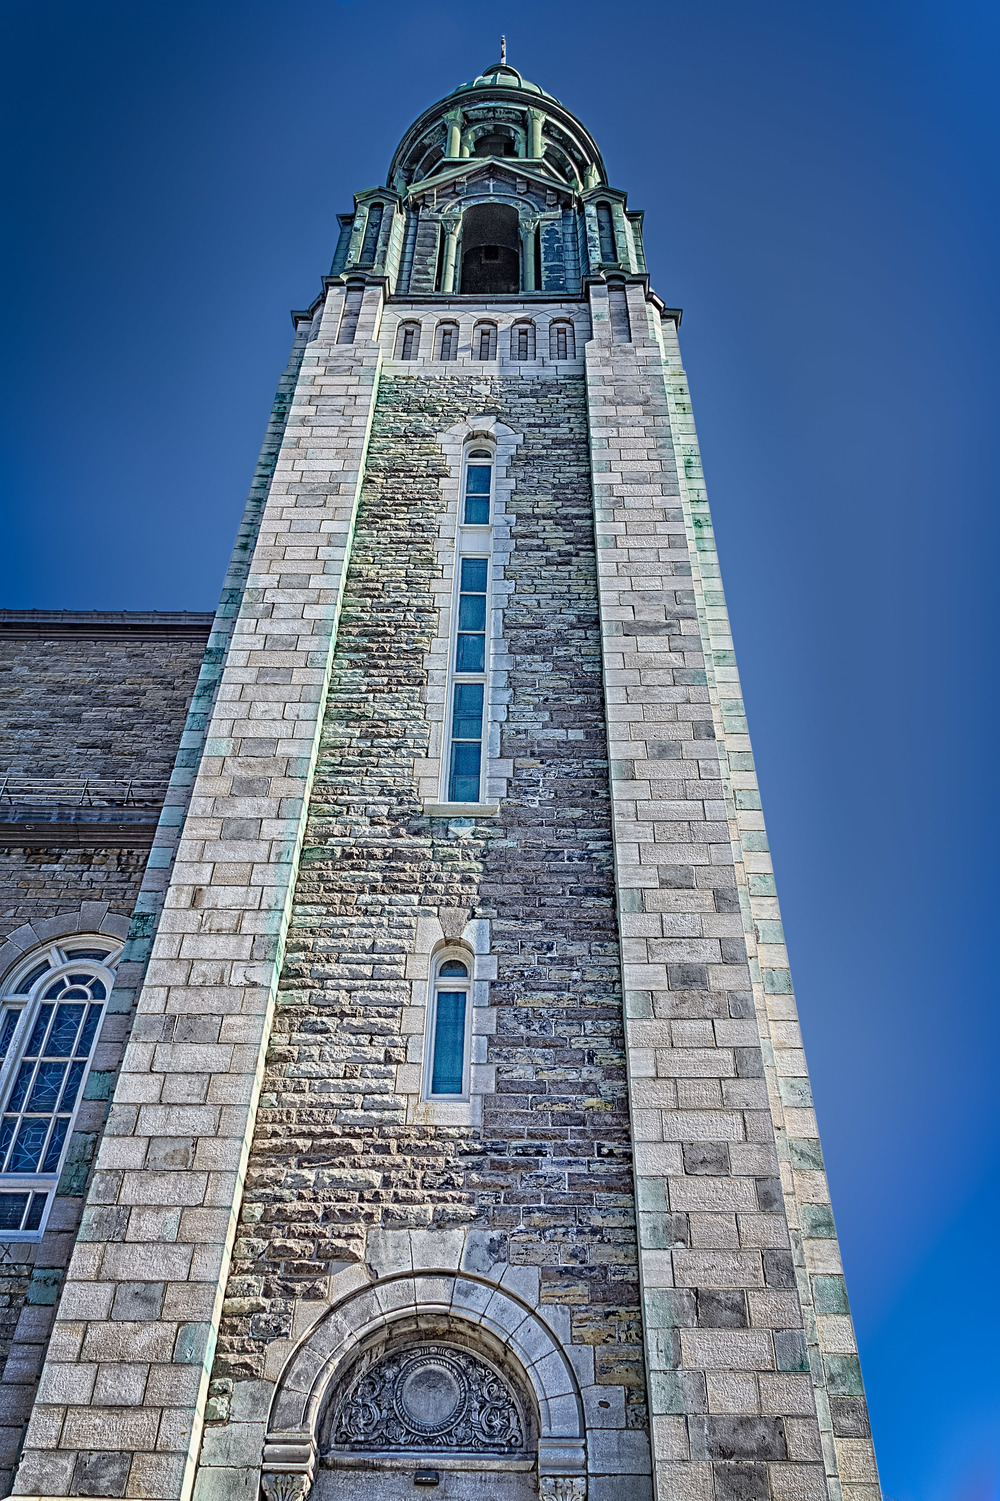 20130309_Churches Verdun__MG_9799_HDR-2.jpg